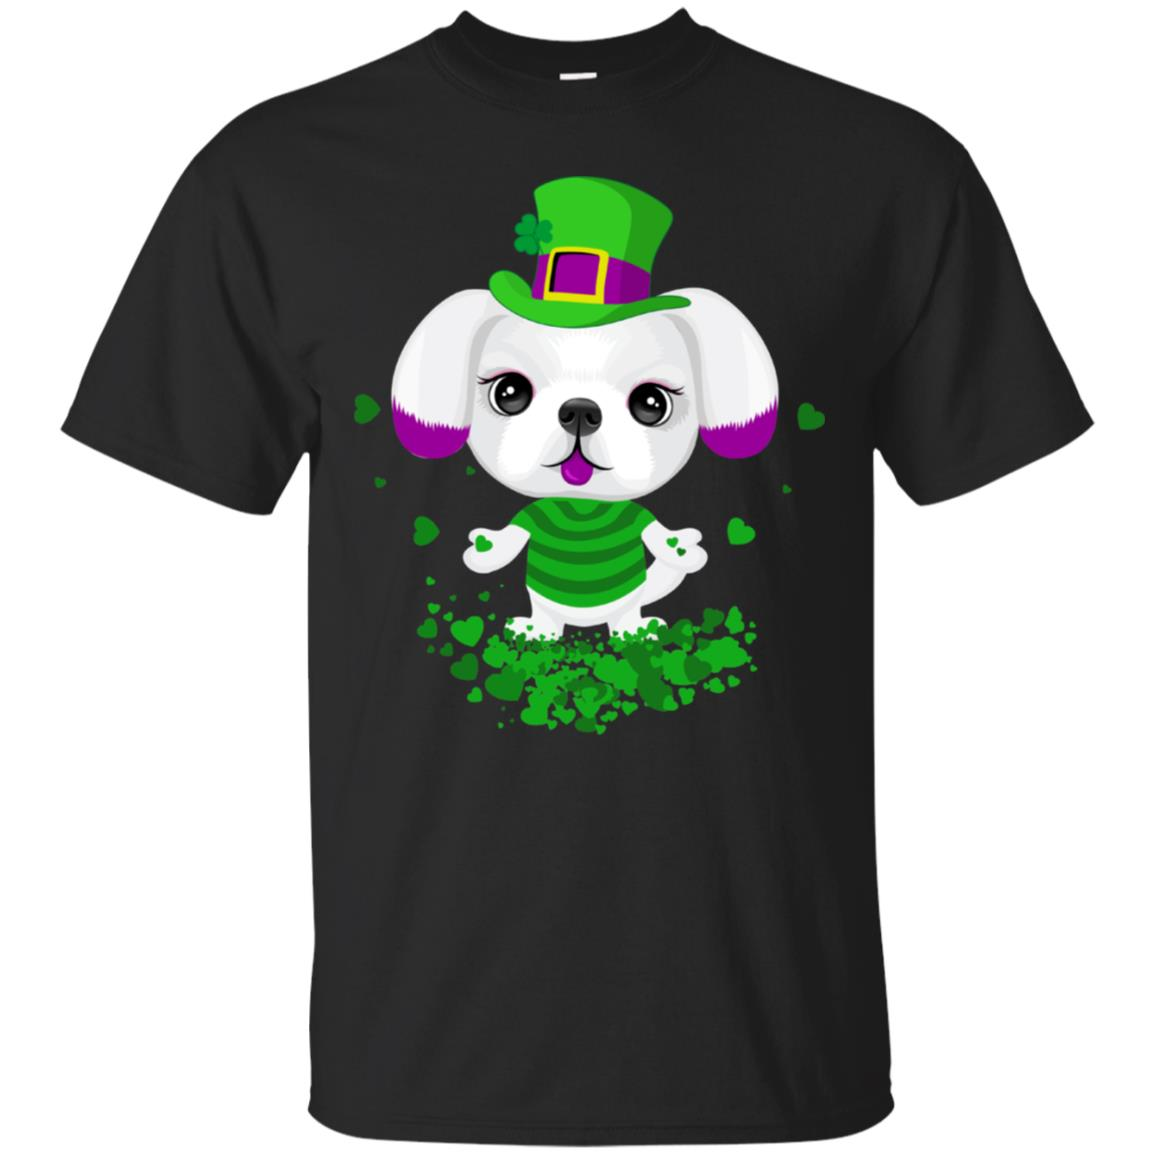 a4c5cd945285 Awesome puppy leprechaun cute puppy st patrick shirt for girls ...